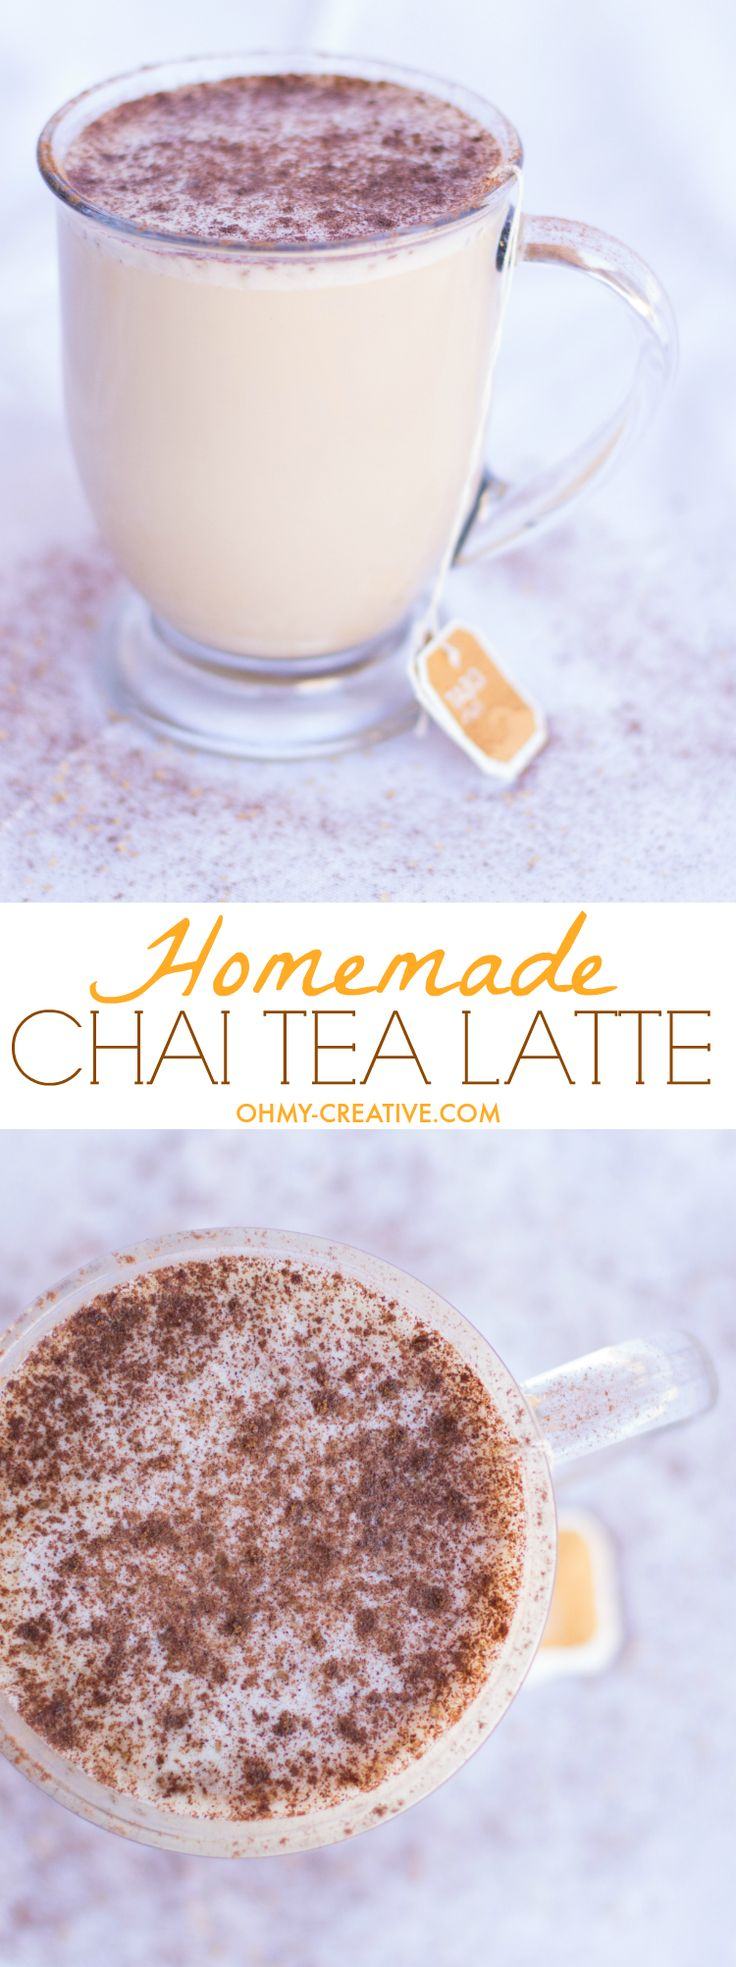 Do you spend too much money on specialty coffees and teas? Here's a solution for the perfect homemade Chai Tea Latte and a way to save money! | OHMY-CREATIVE.COM